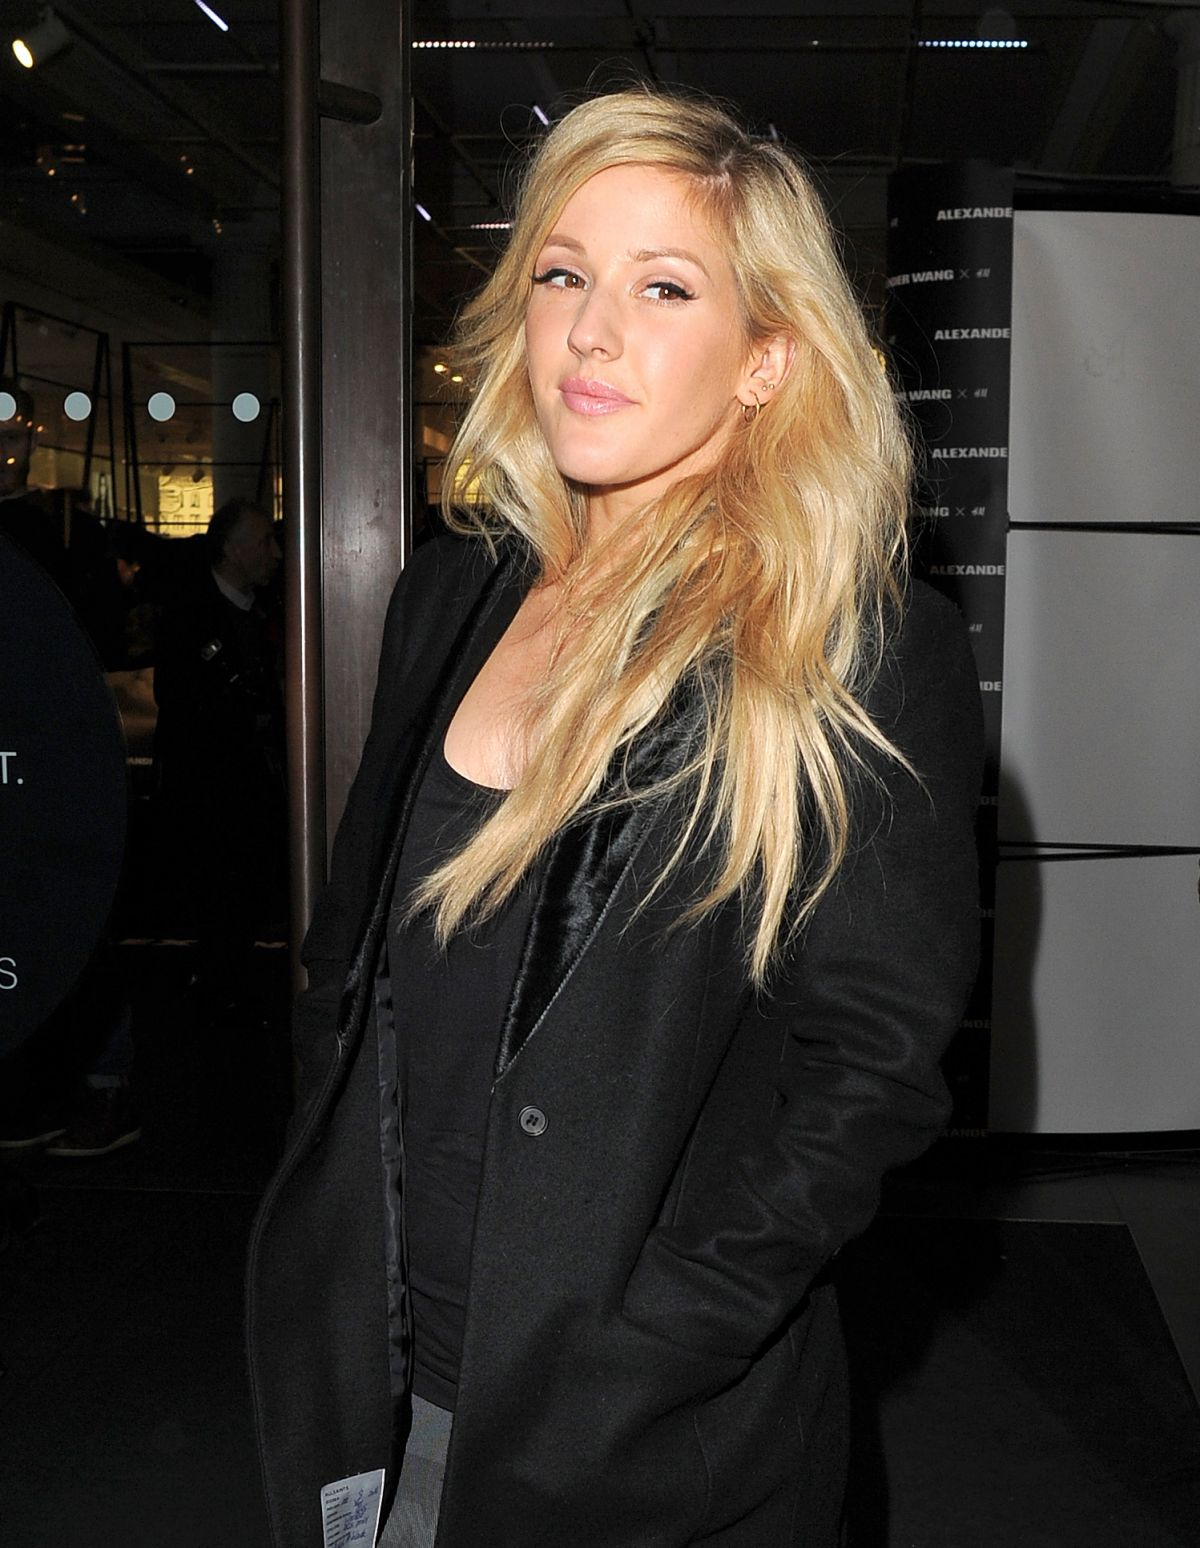 ELLIE GOULDING at Llexander Wang and H&M VIP Party in London